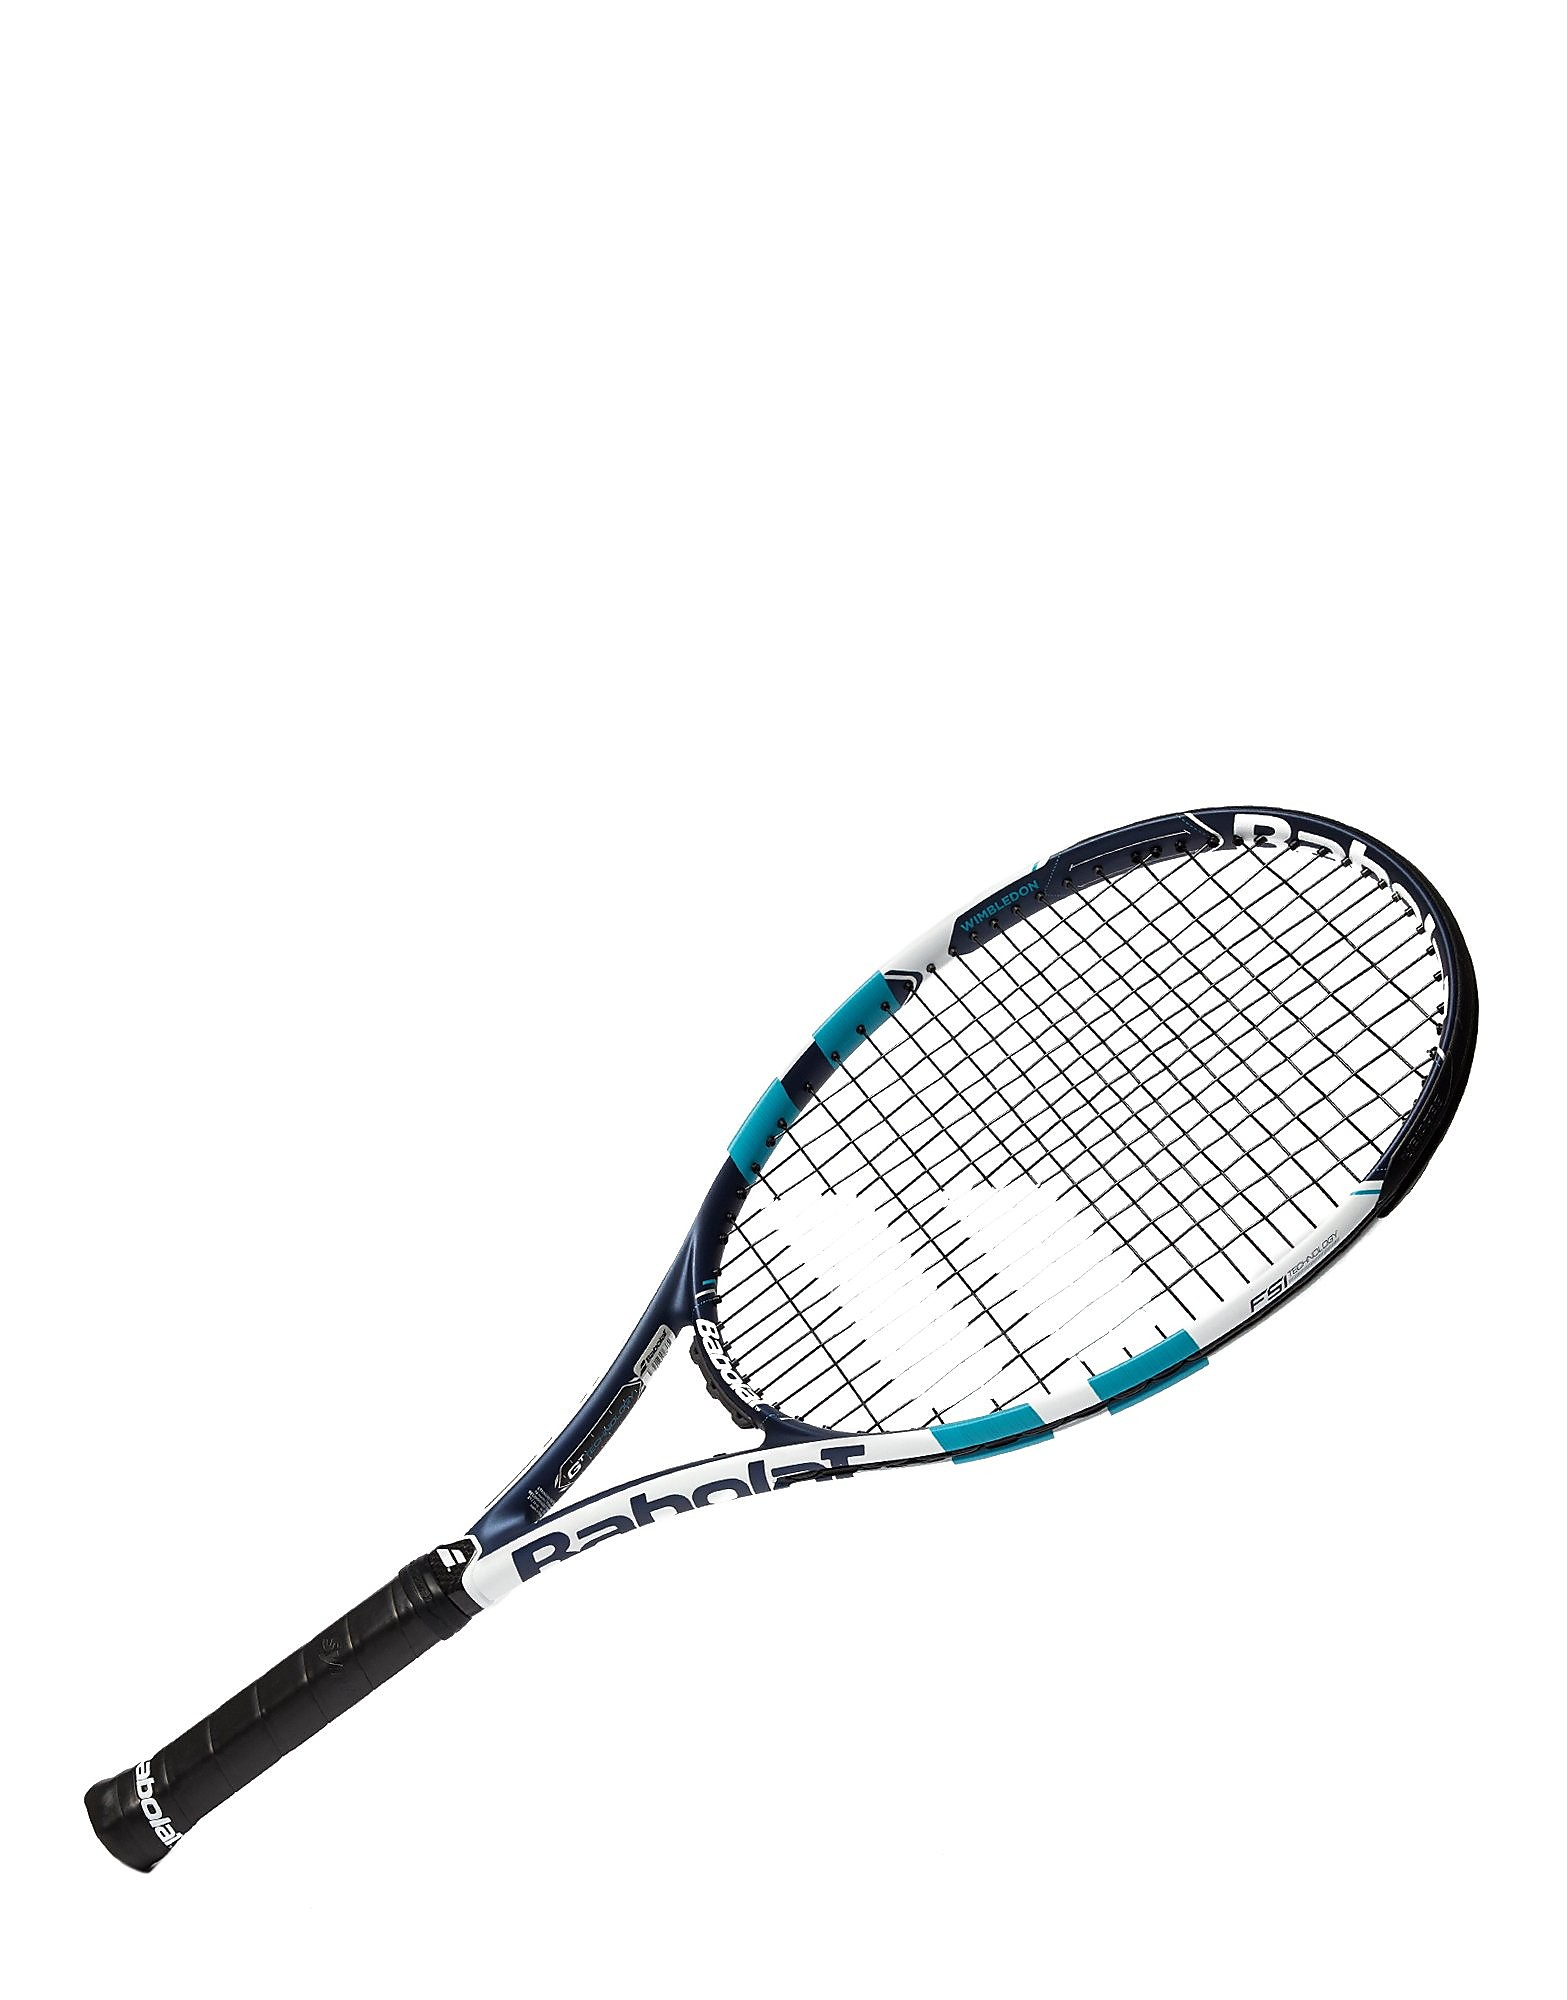 Babolat Pure Drive 26 Tennis Racket